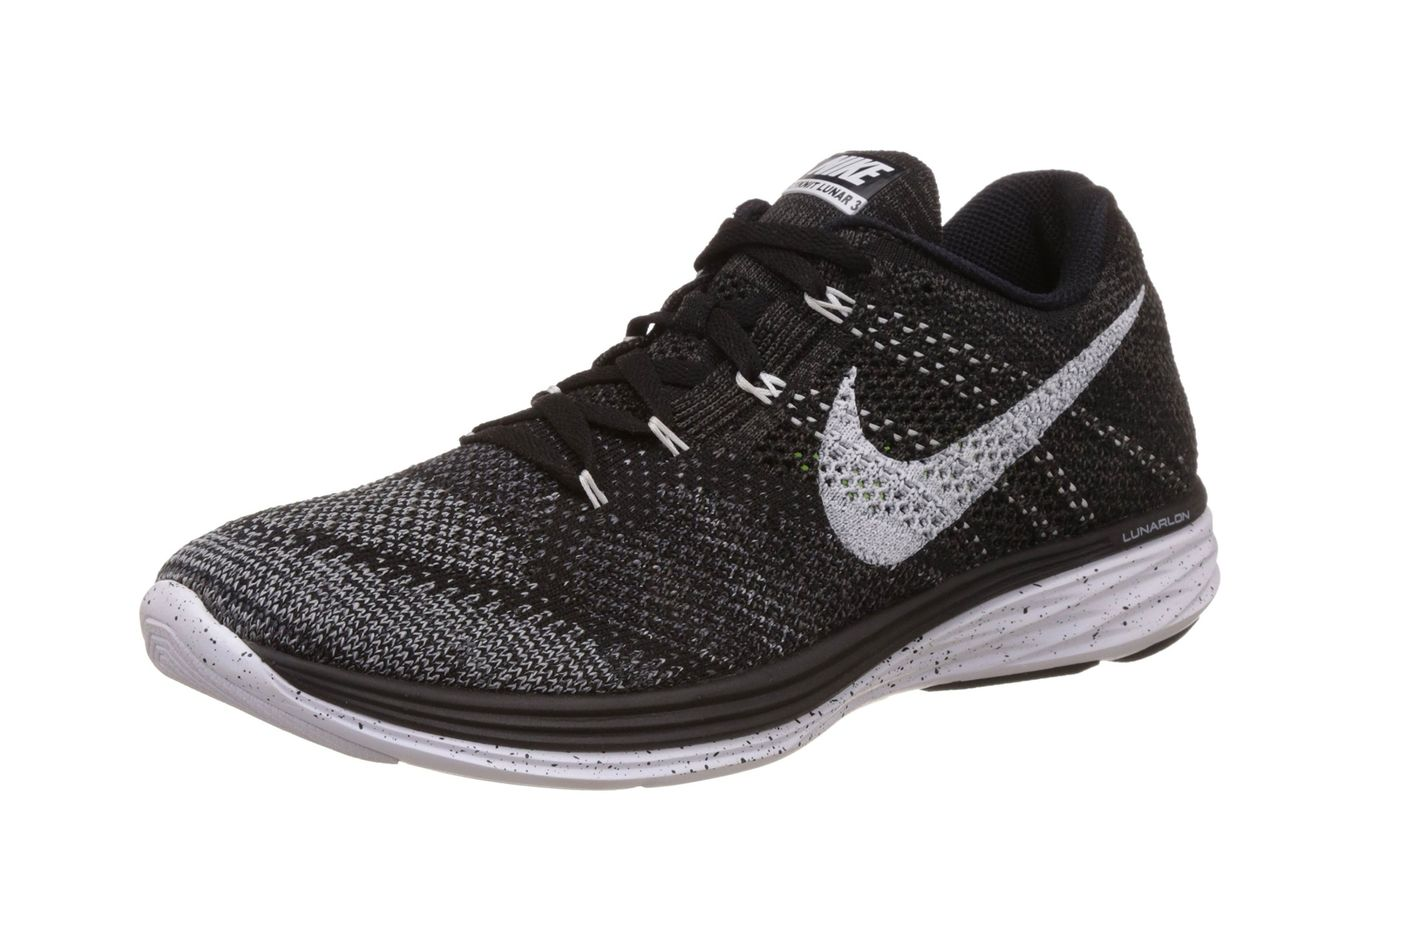 new product 361fa 7443c Nike Men s Flyknit Lunar 3 Running Shoe at Amazon